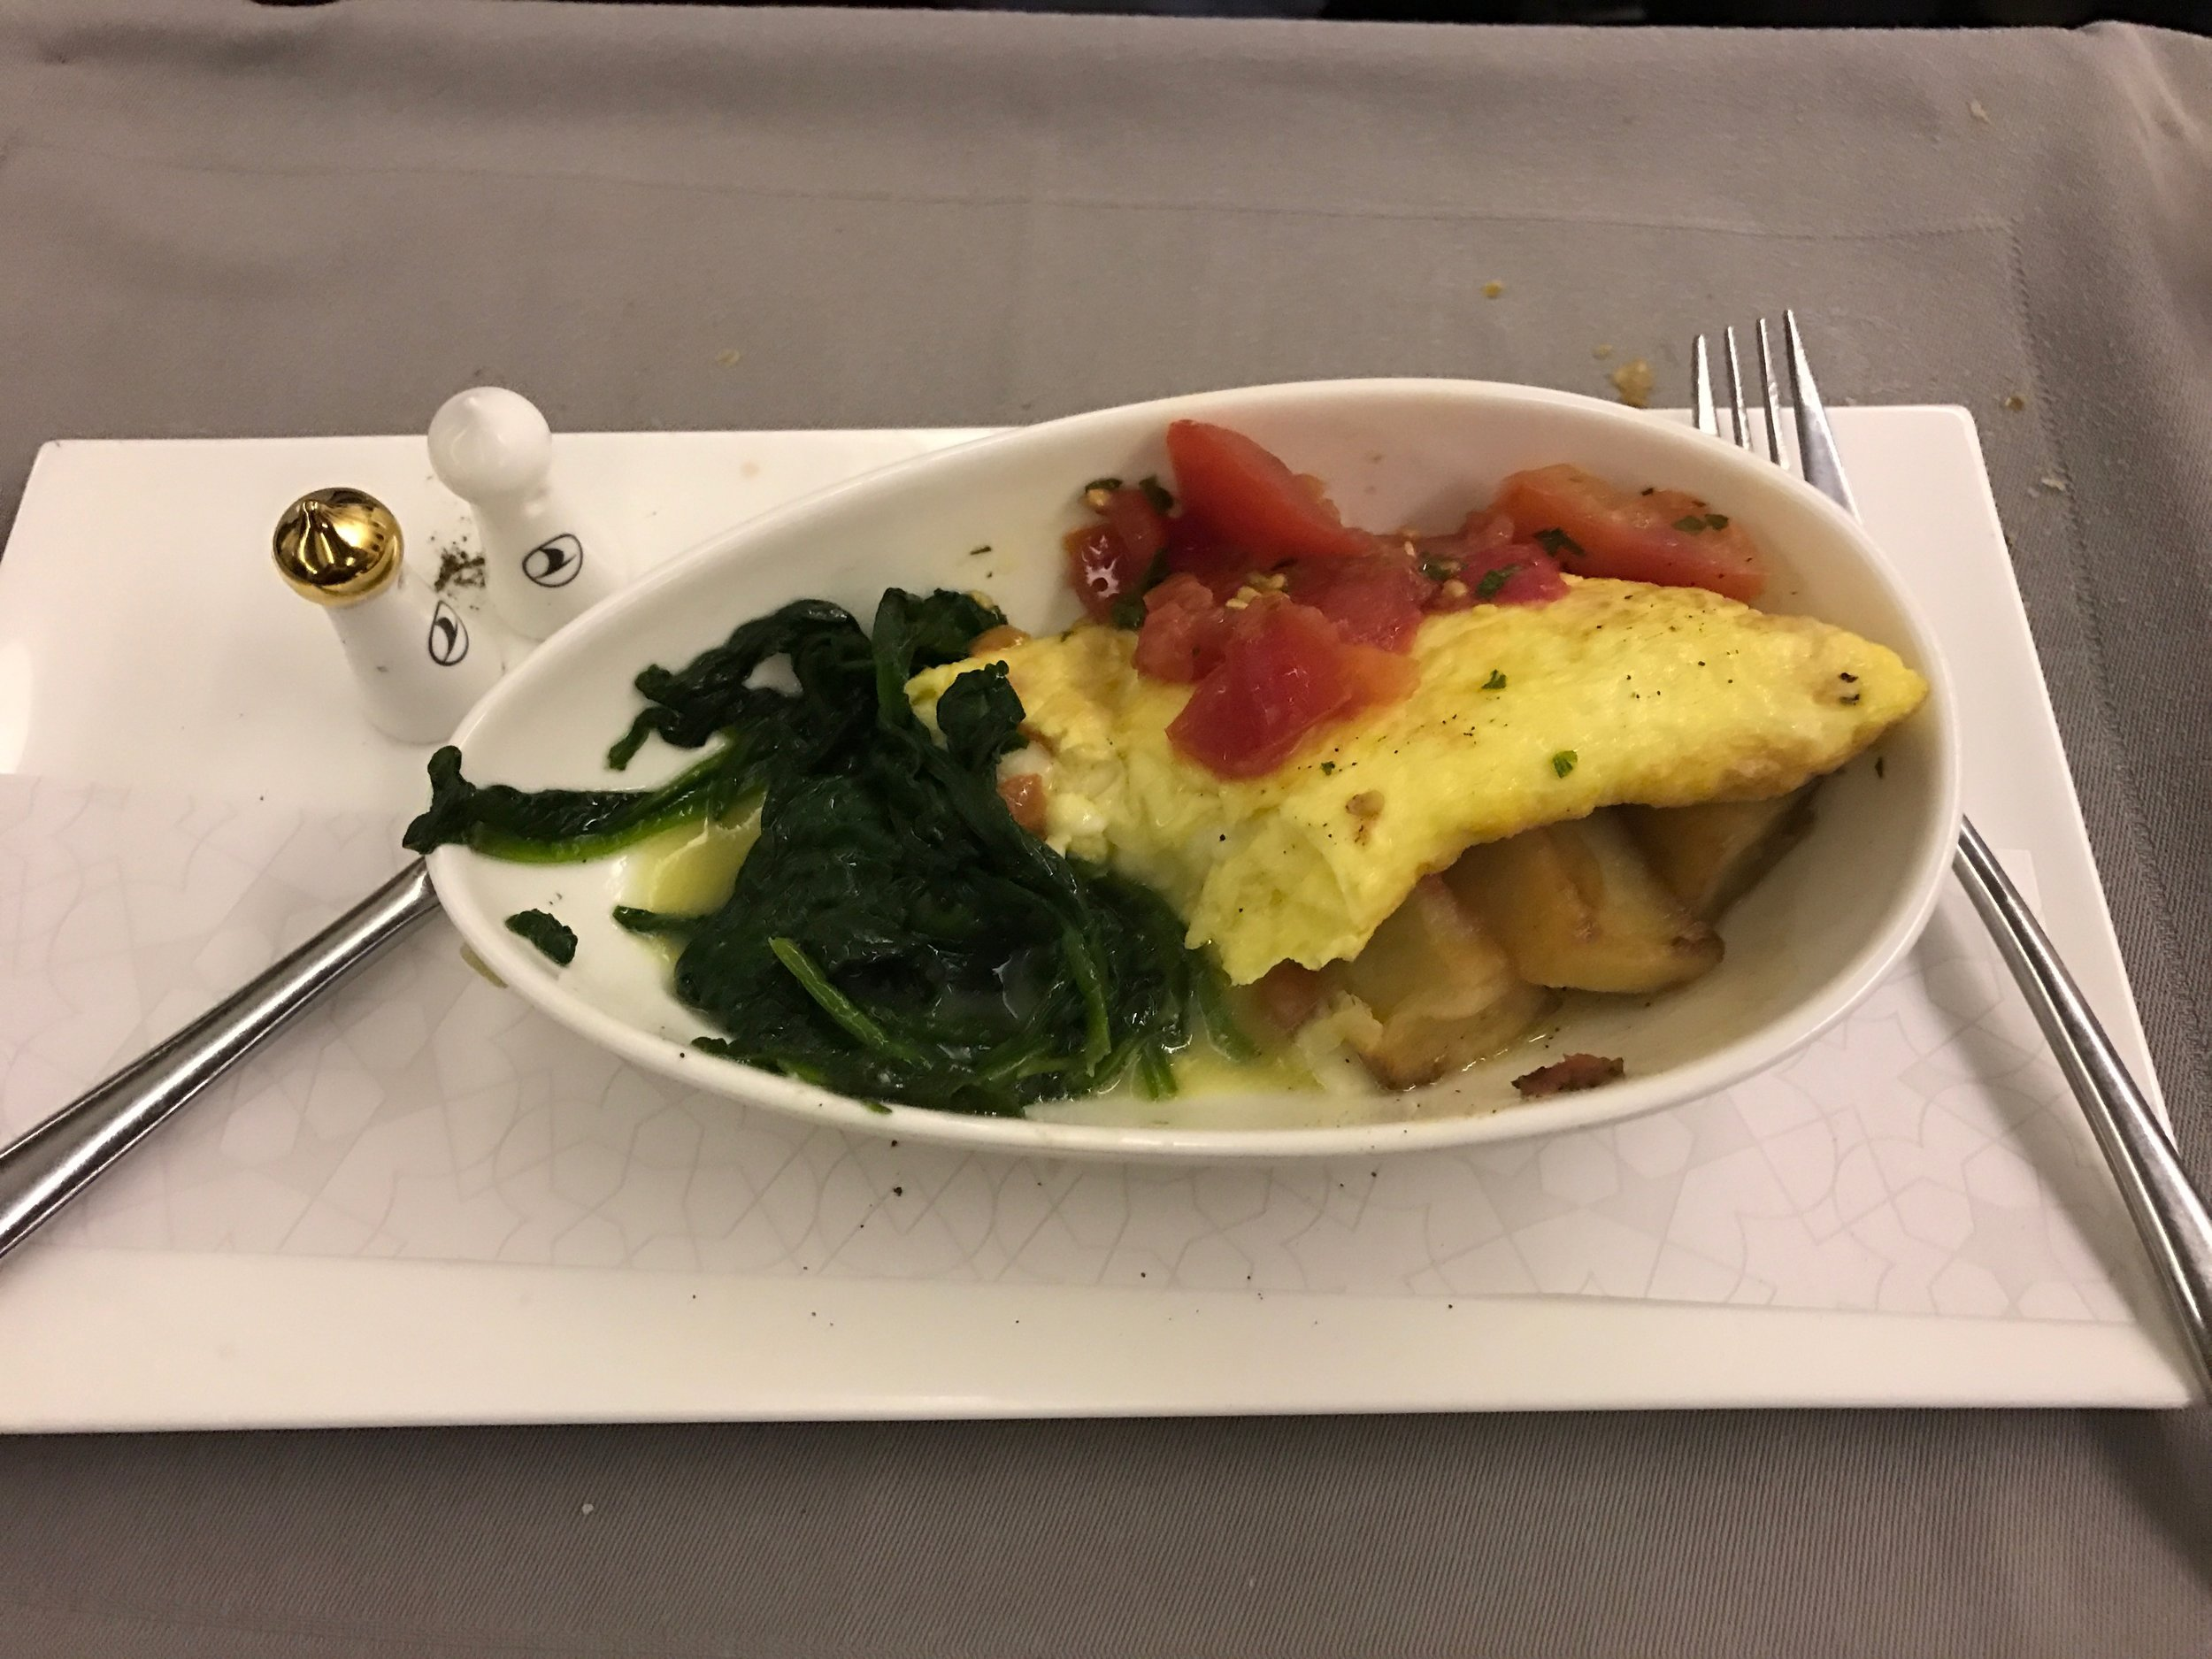 Omlette with potatoes, tomatoes, and spinach